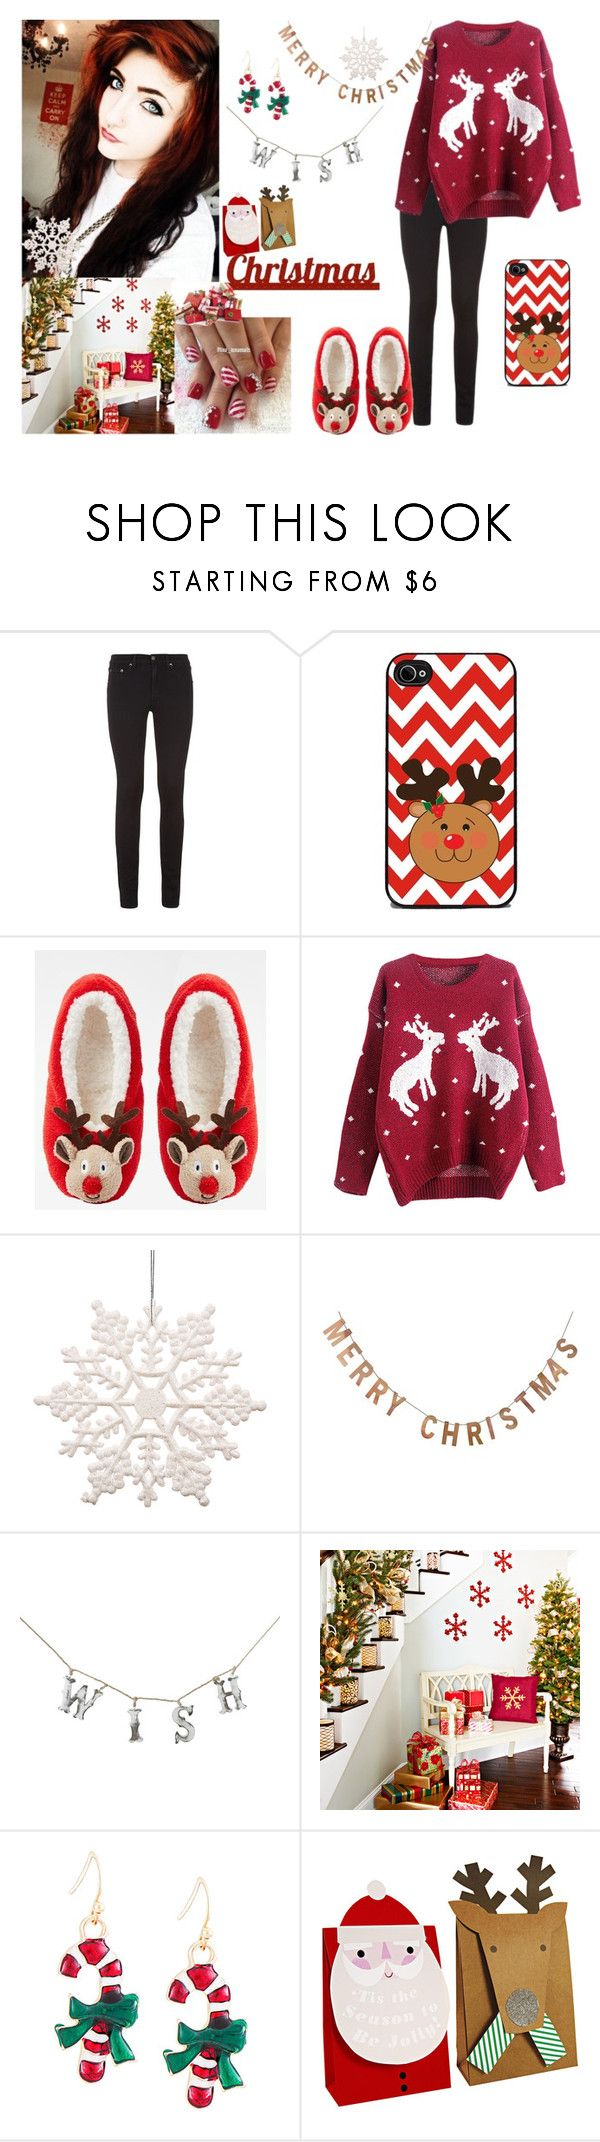 """""""Merry Christmas to everyone! -read the description-"""" by merri-broskef6969 ❤ liked on Polyvore featuring rag & bone, ASOS, Threshold, Dot & Bo and Sixtrees"""